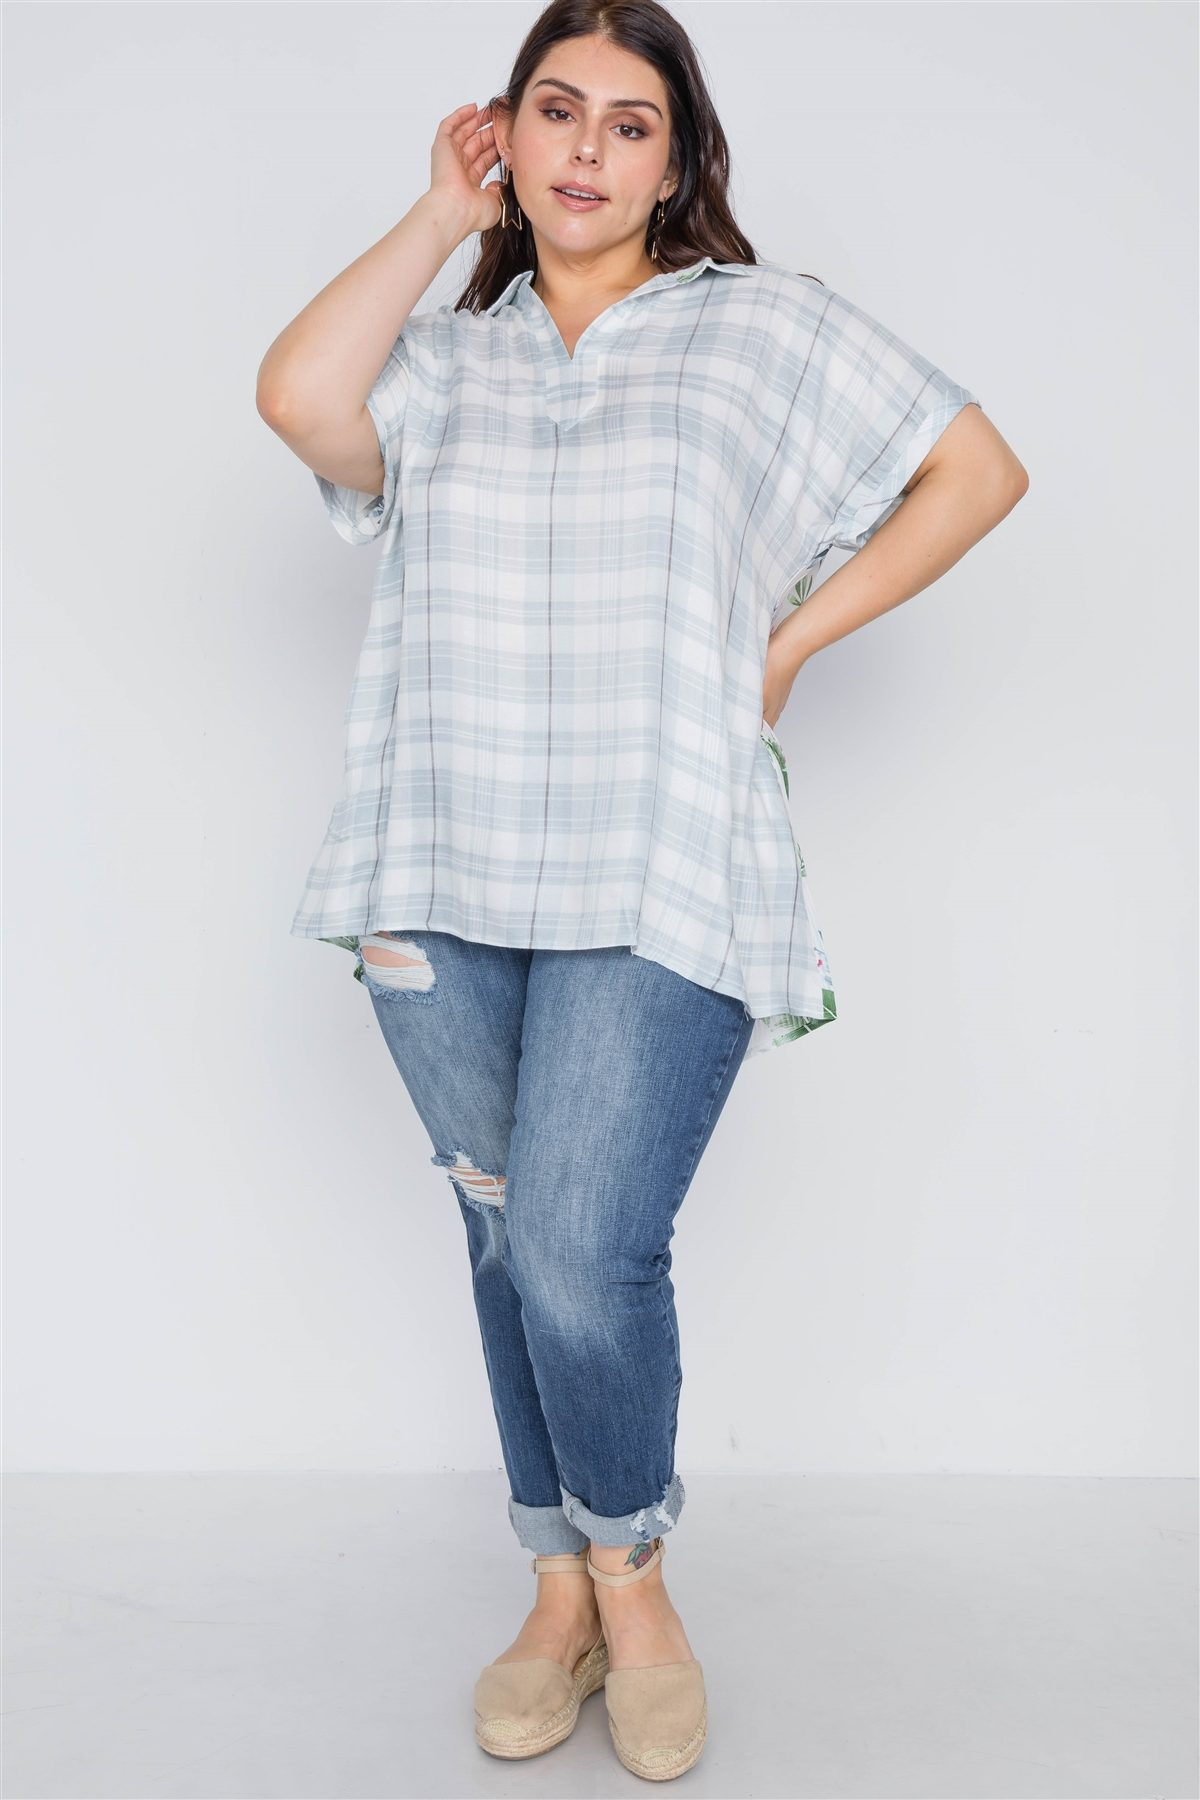 Plus Size Denim Grey Combo Plaid Floral Sort Sleeve Top